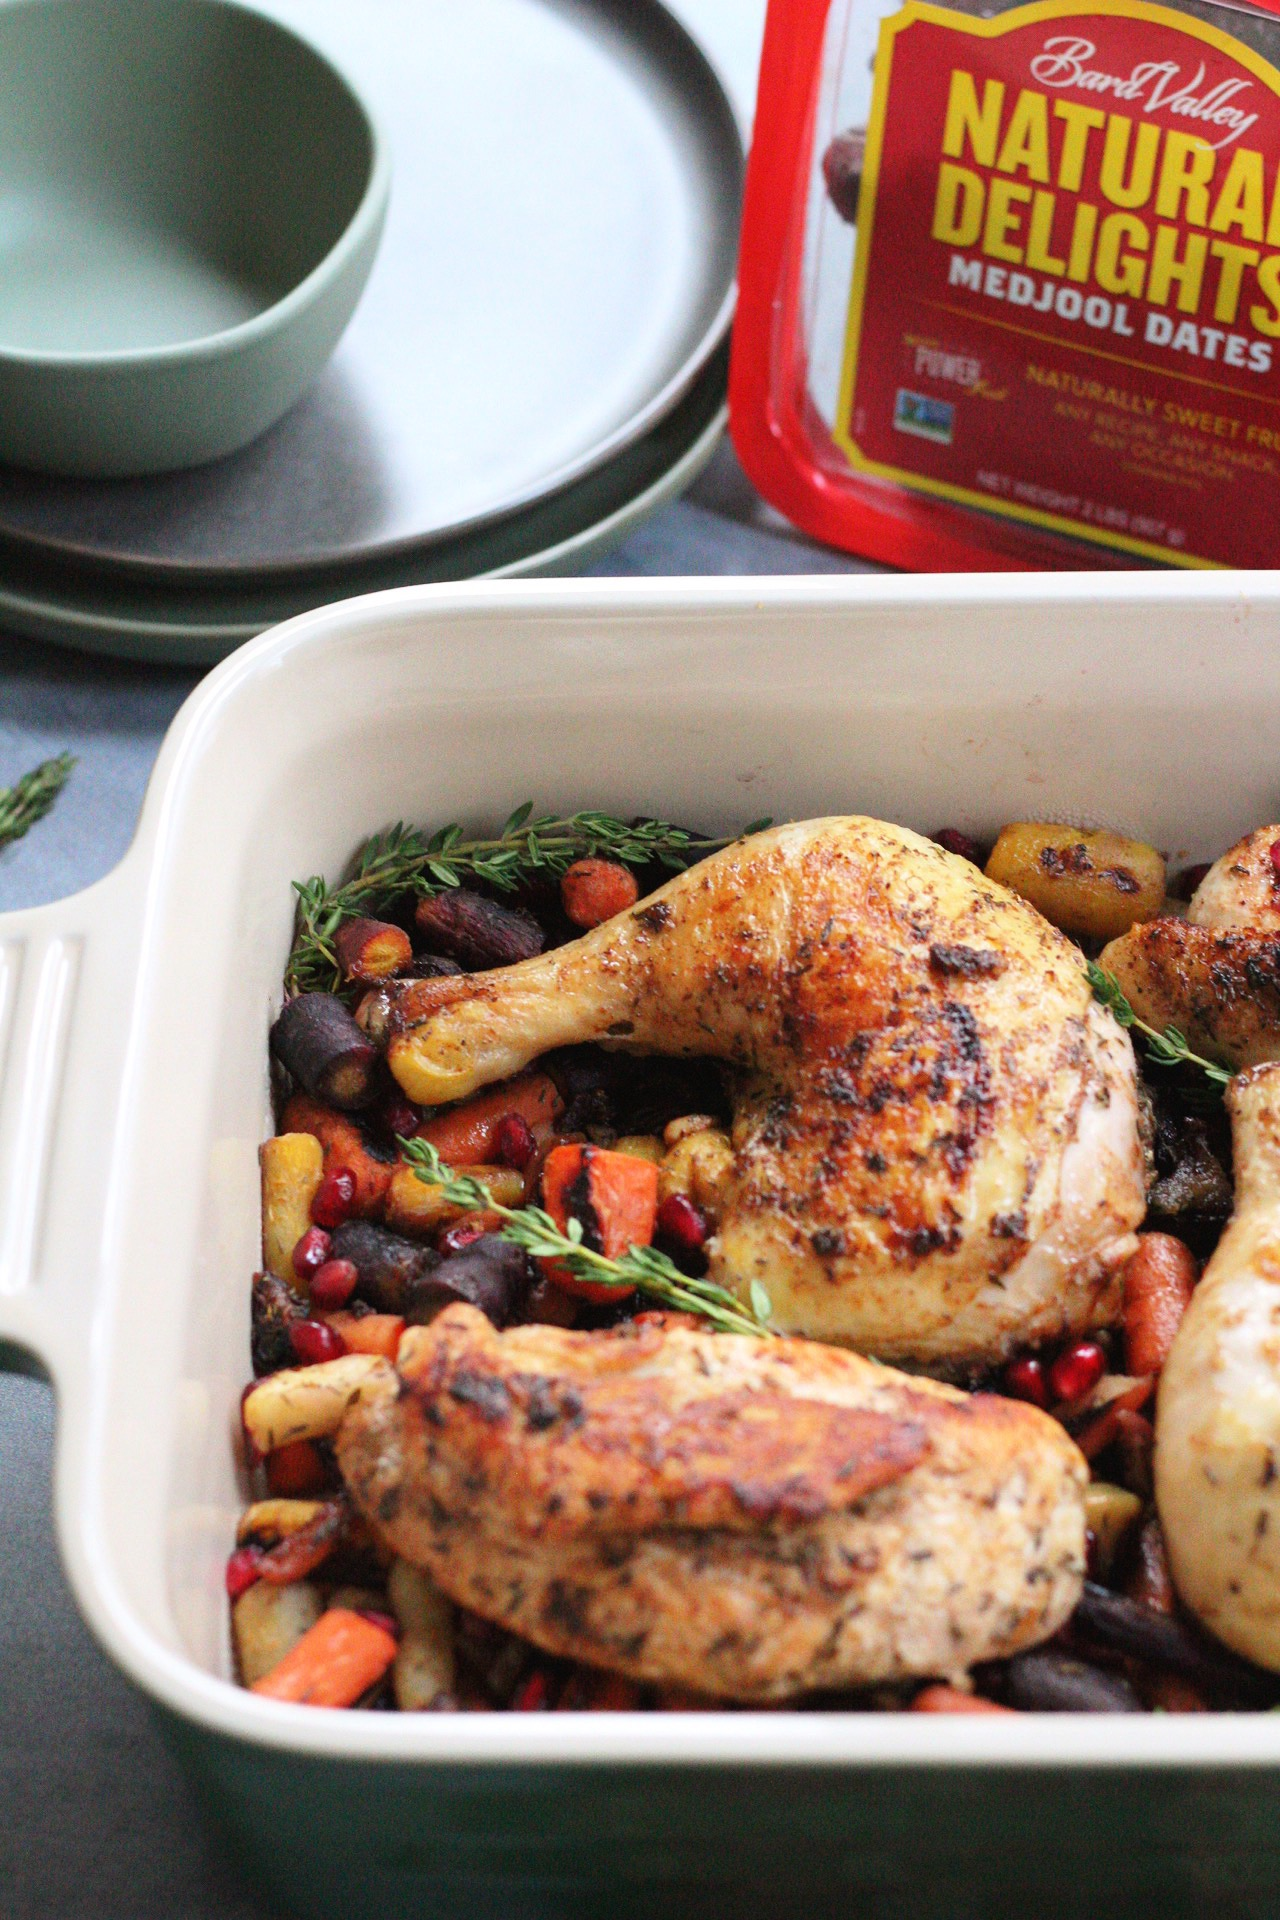 Roasted Chicken with a Medjool Date, Carrot and Apple Medley